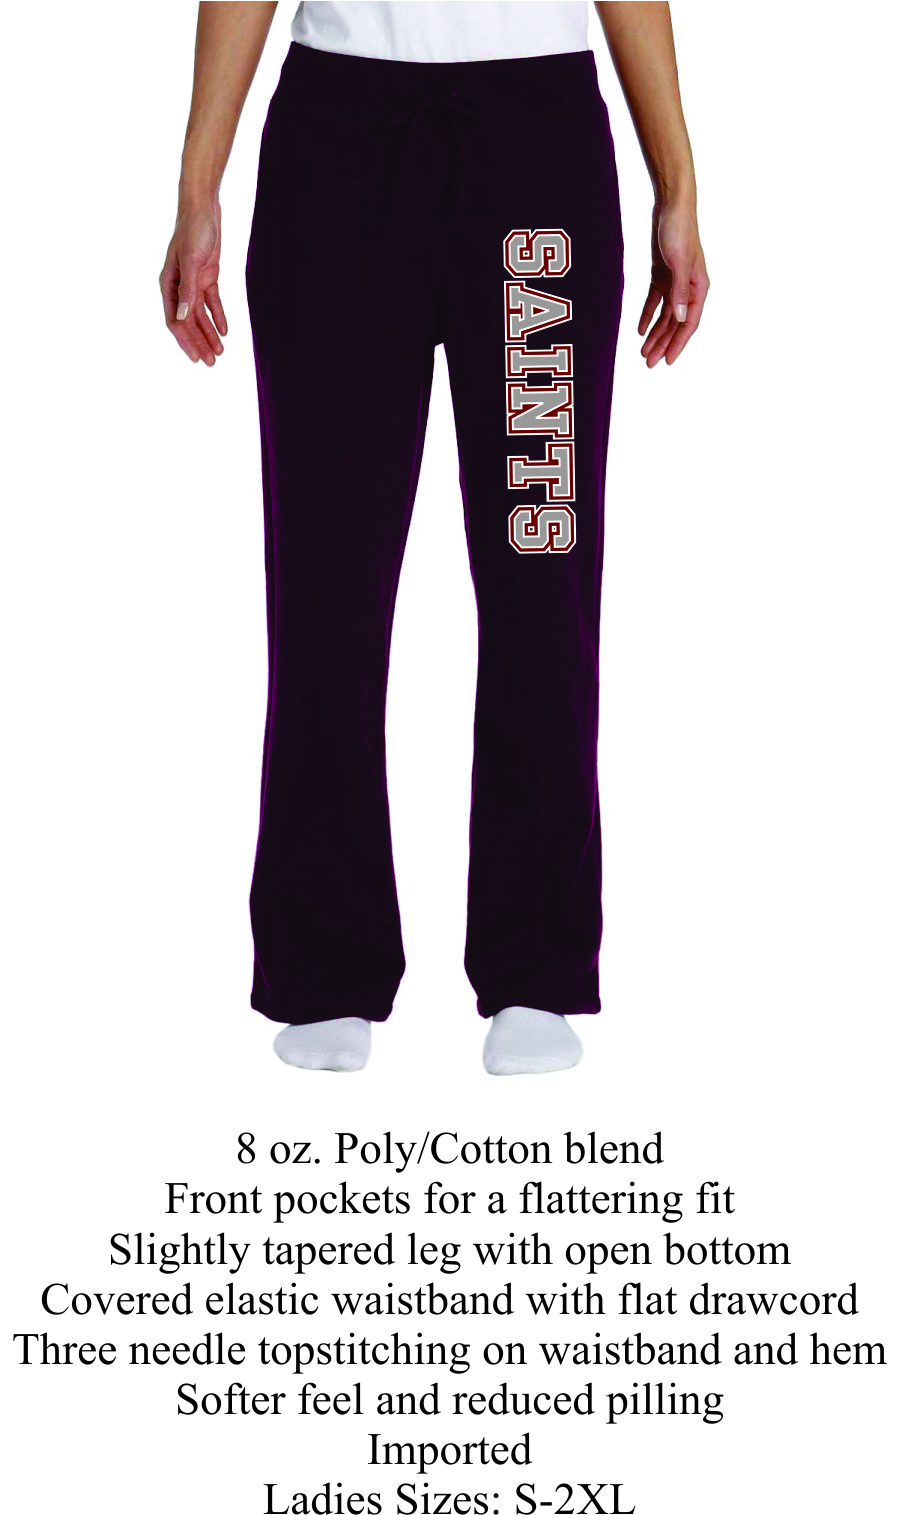 Maroon Open Bottom Sweat Pants Ladies w/ Saints Logo